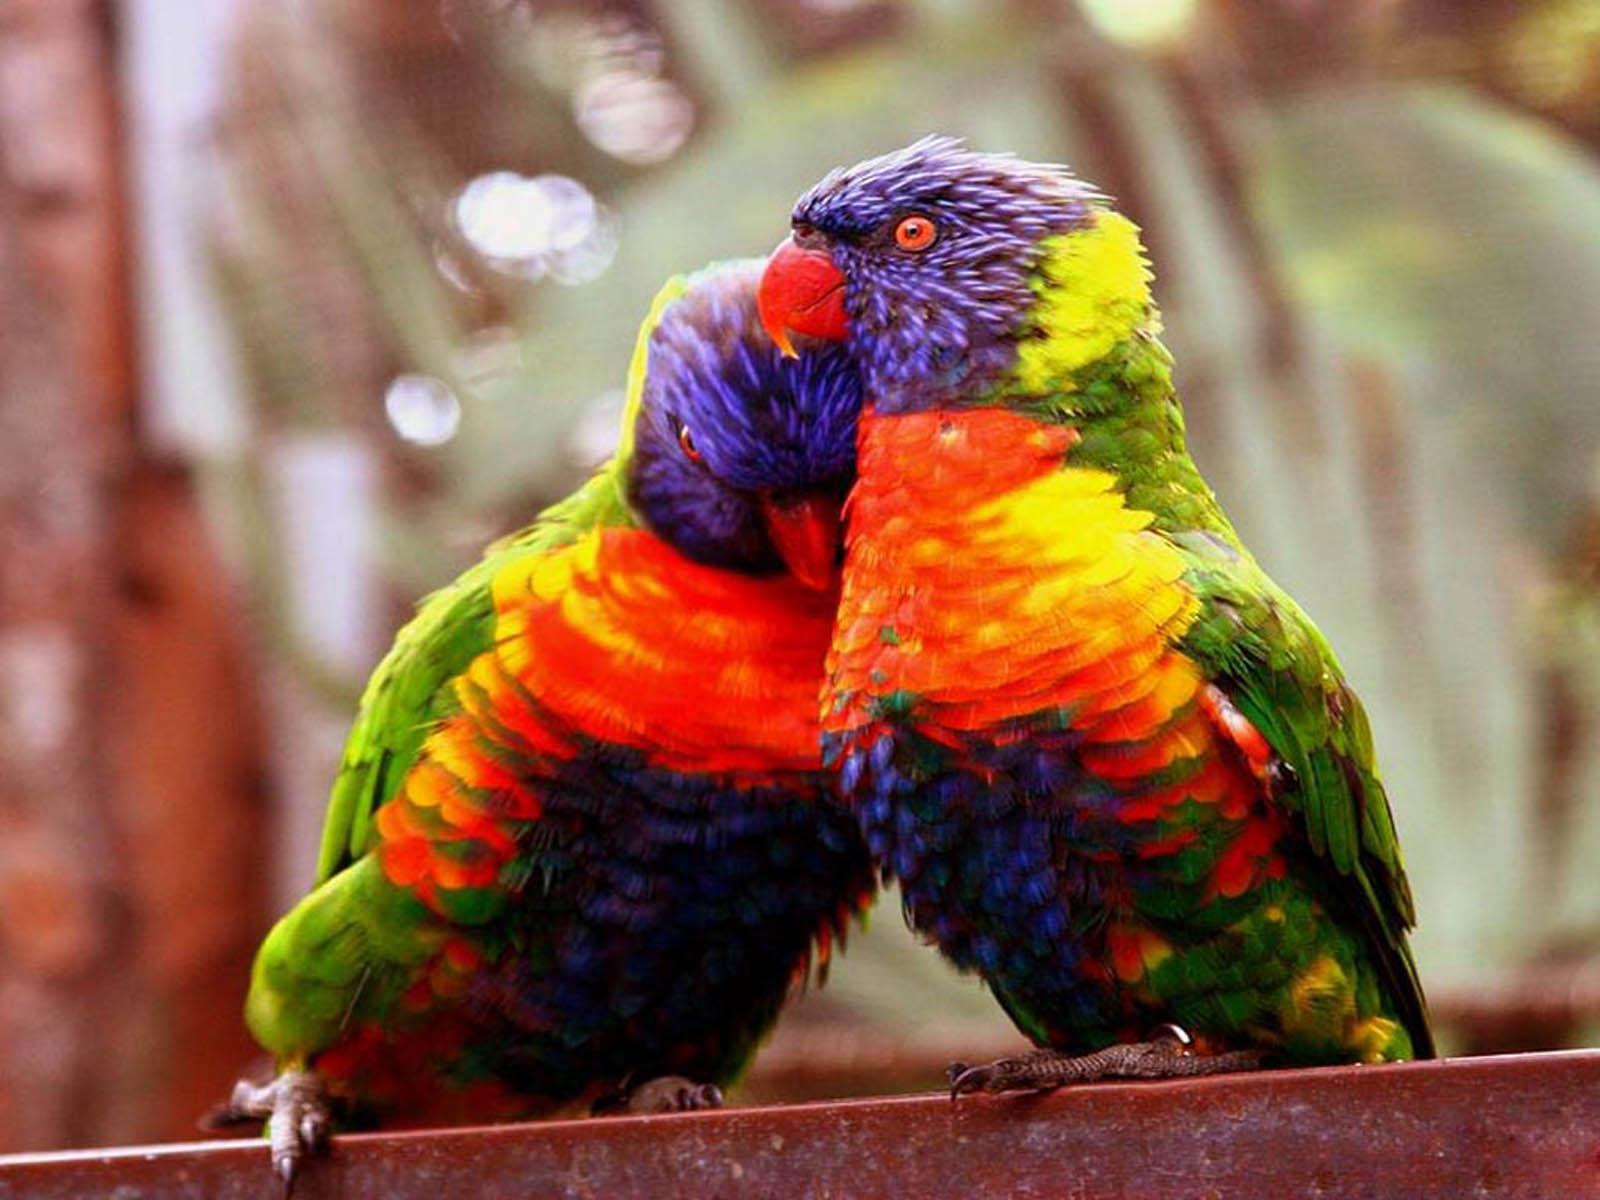 Tag: Love Birds Wallpapers, Backgrounds, Photos, Images and Pictures